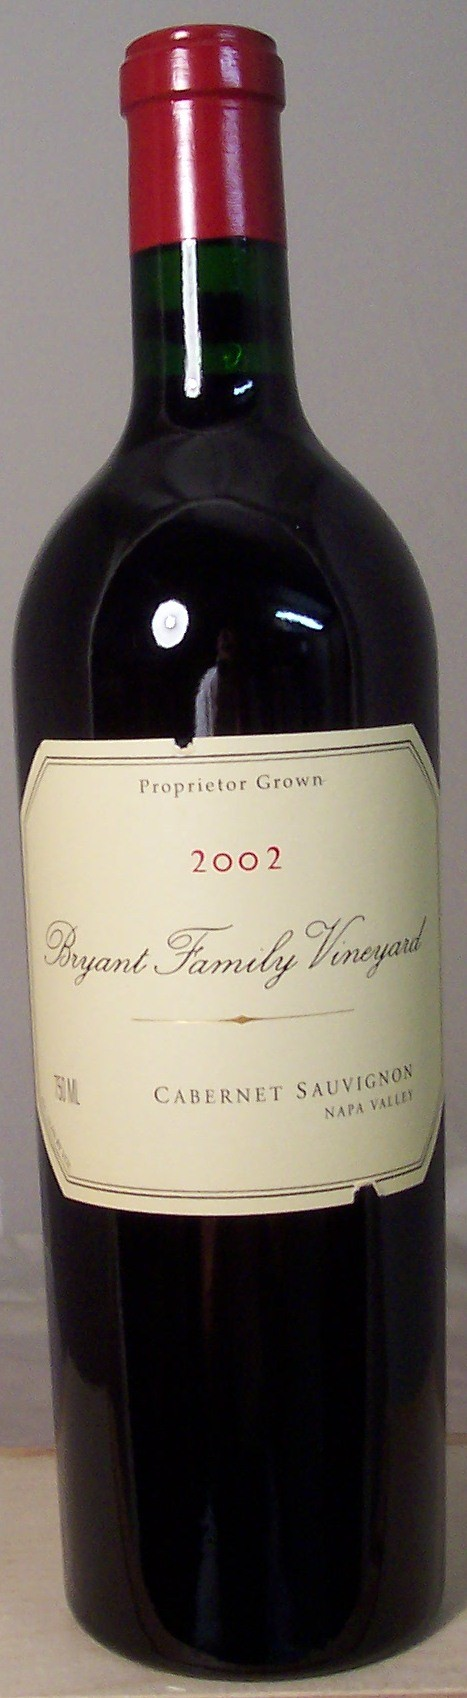 Bryant Family Vineyard Cabernet Sauvignon Napa Valley 2002